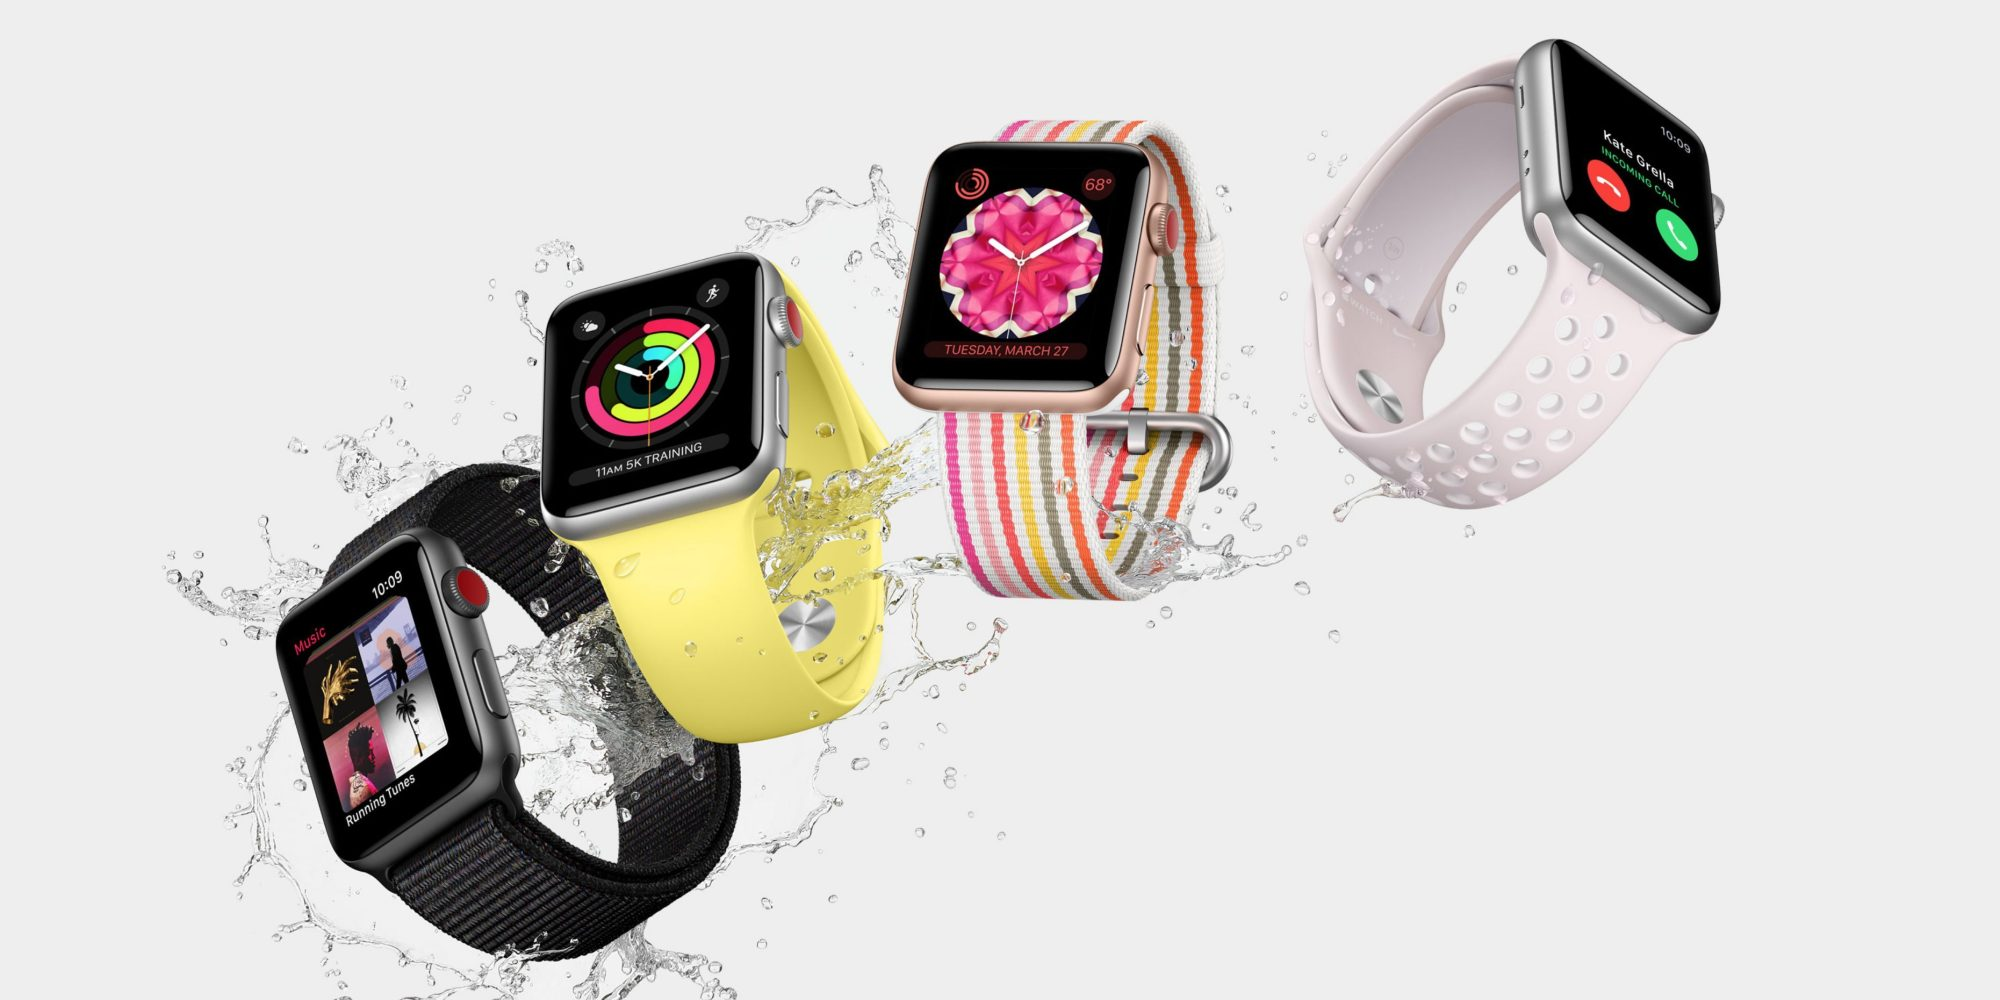 ❤ Apple Watch Series 3 after updating to watchOS 7 might experience random reboots and other bugs